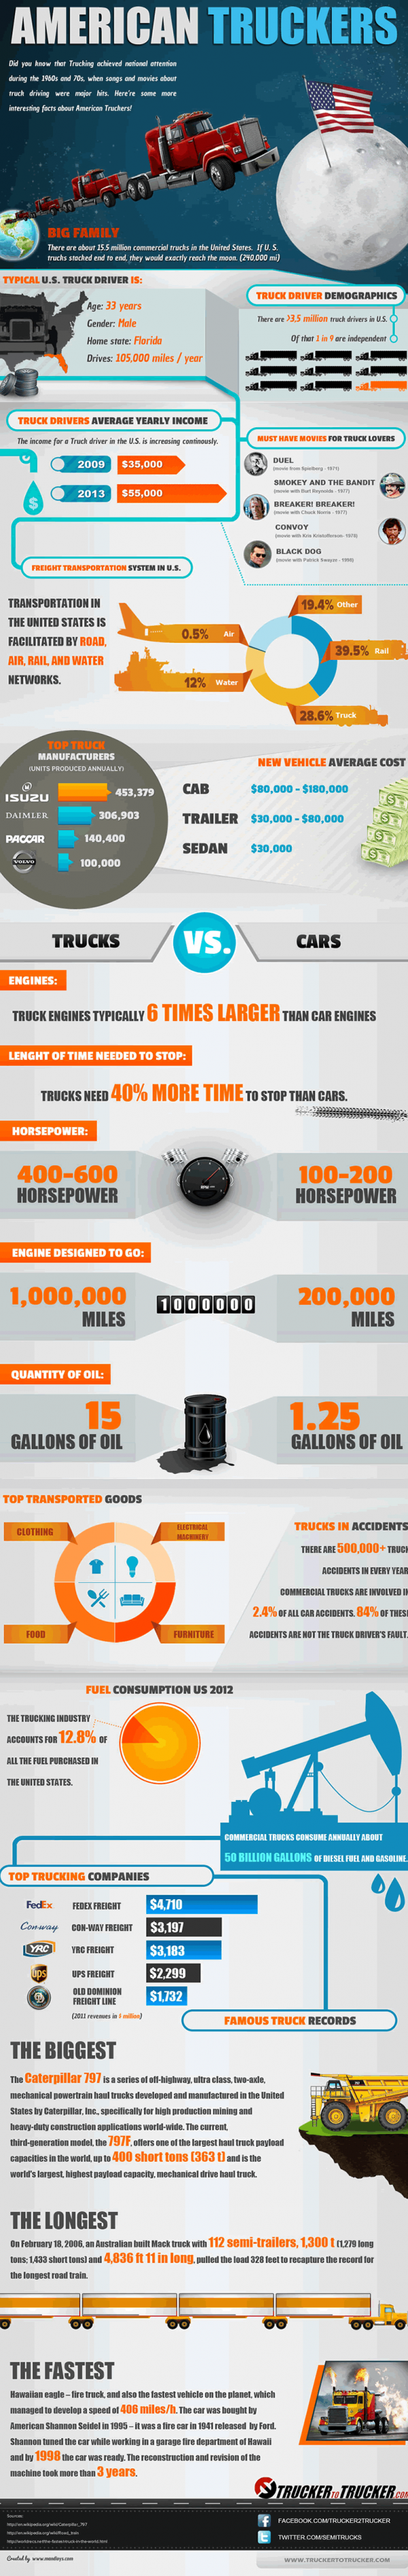 American Truckers - Crazy Facts You Should Know